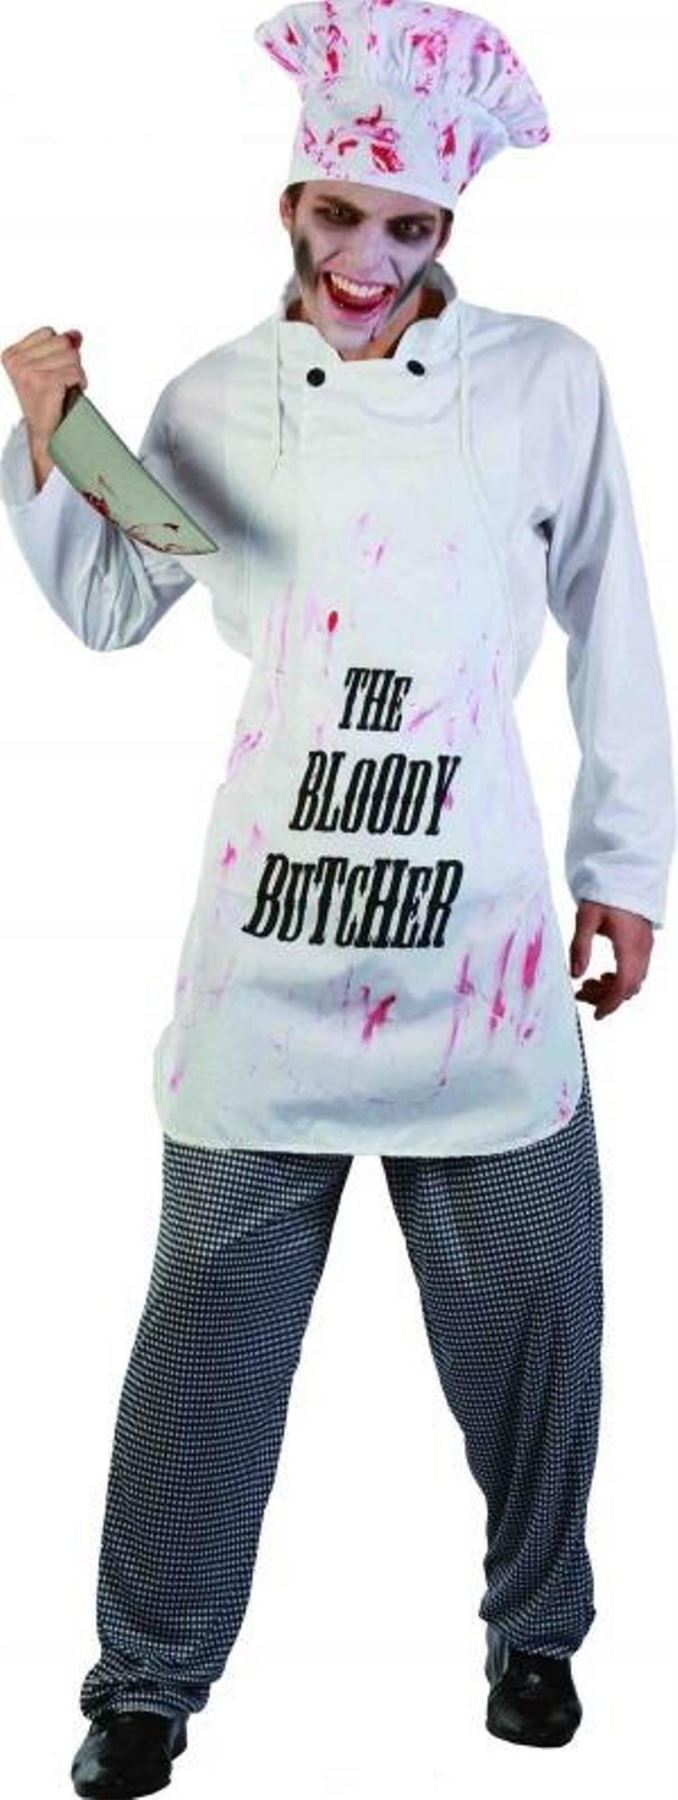 NEW-MENS-FANCY-DRESS-ADULT-BLOODY-Butcher-CHEF-  sc 1 st  eBay & NEW MENS FANCY DRESS ADULT BLOODY Butcher CHEF COOK ZOMBIE COSTUME ...